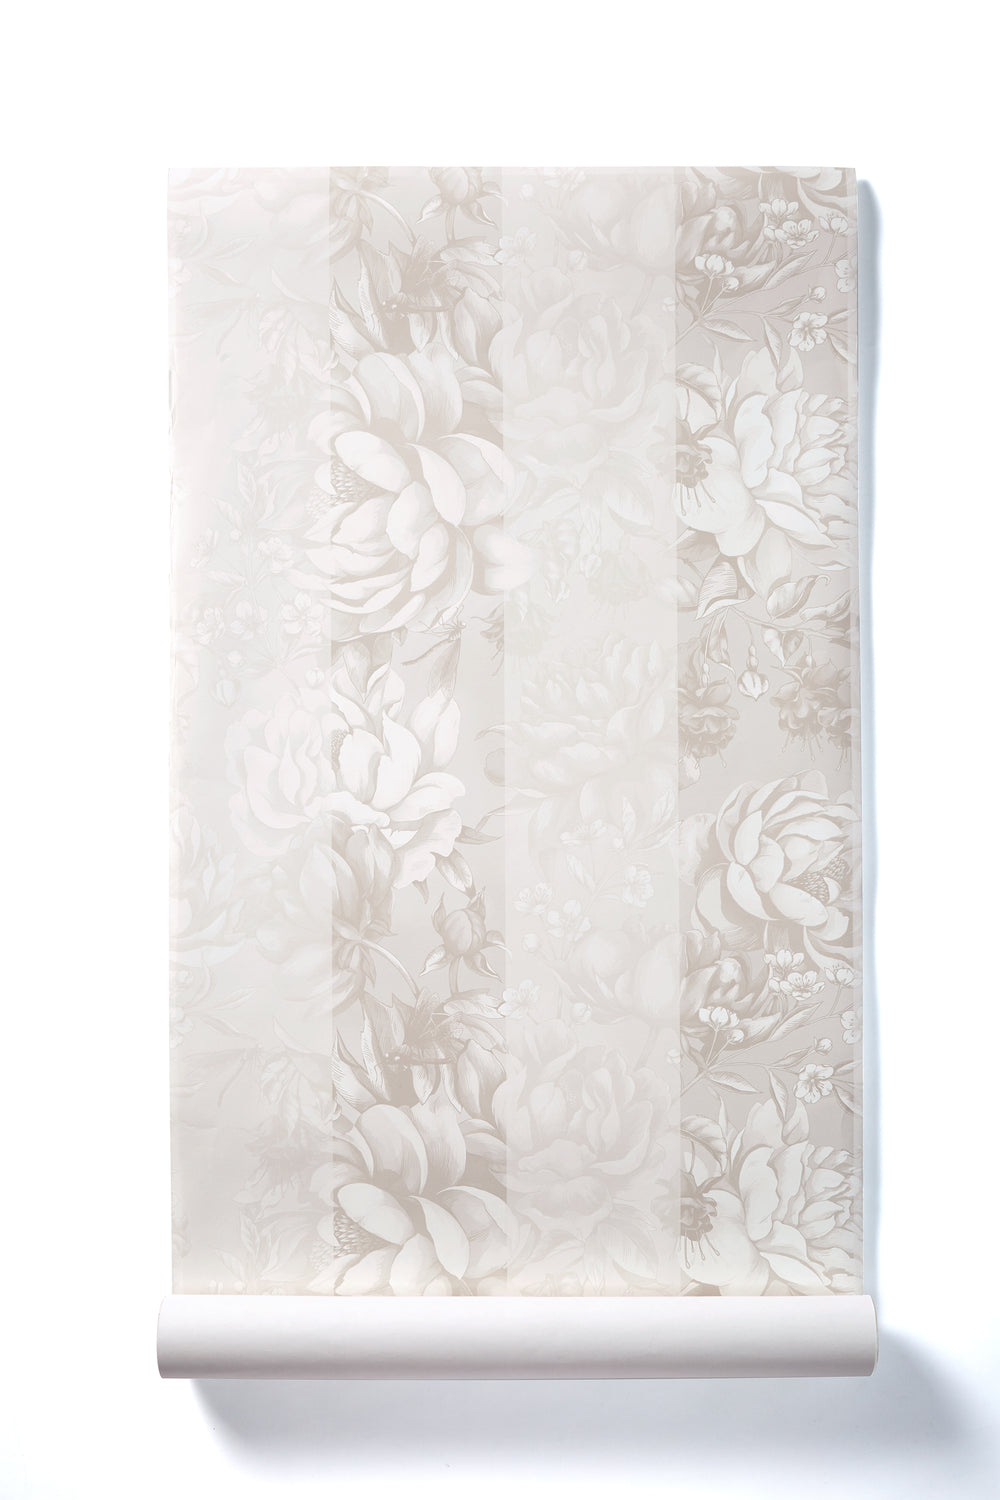 Sweet Sweet Life - Oversized Cream Peony Stripe Floral Wallpaper